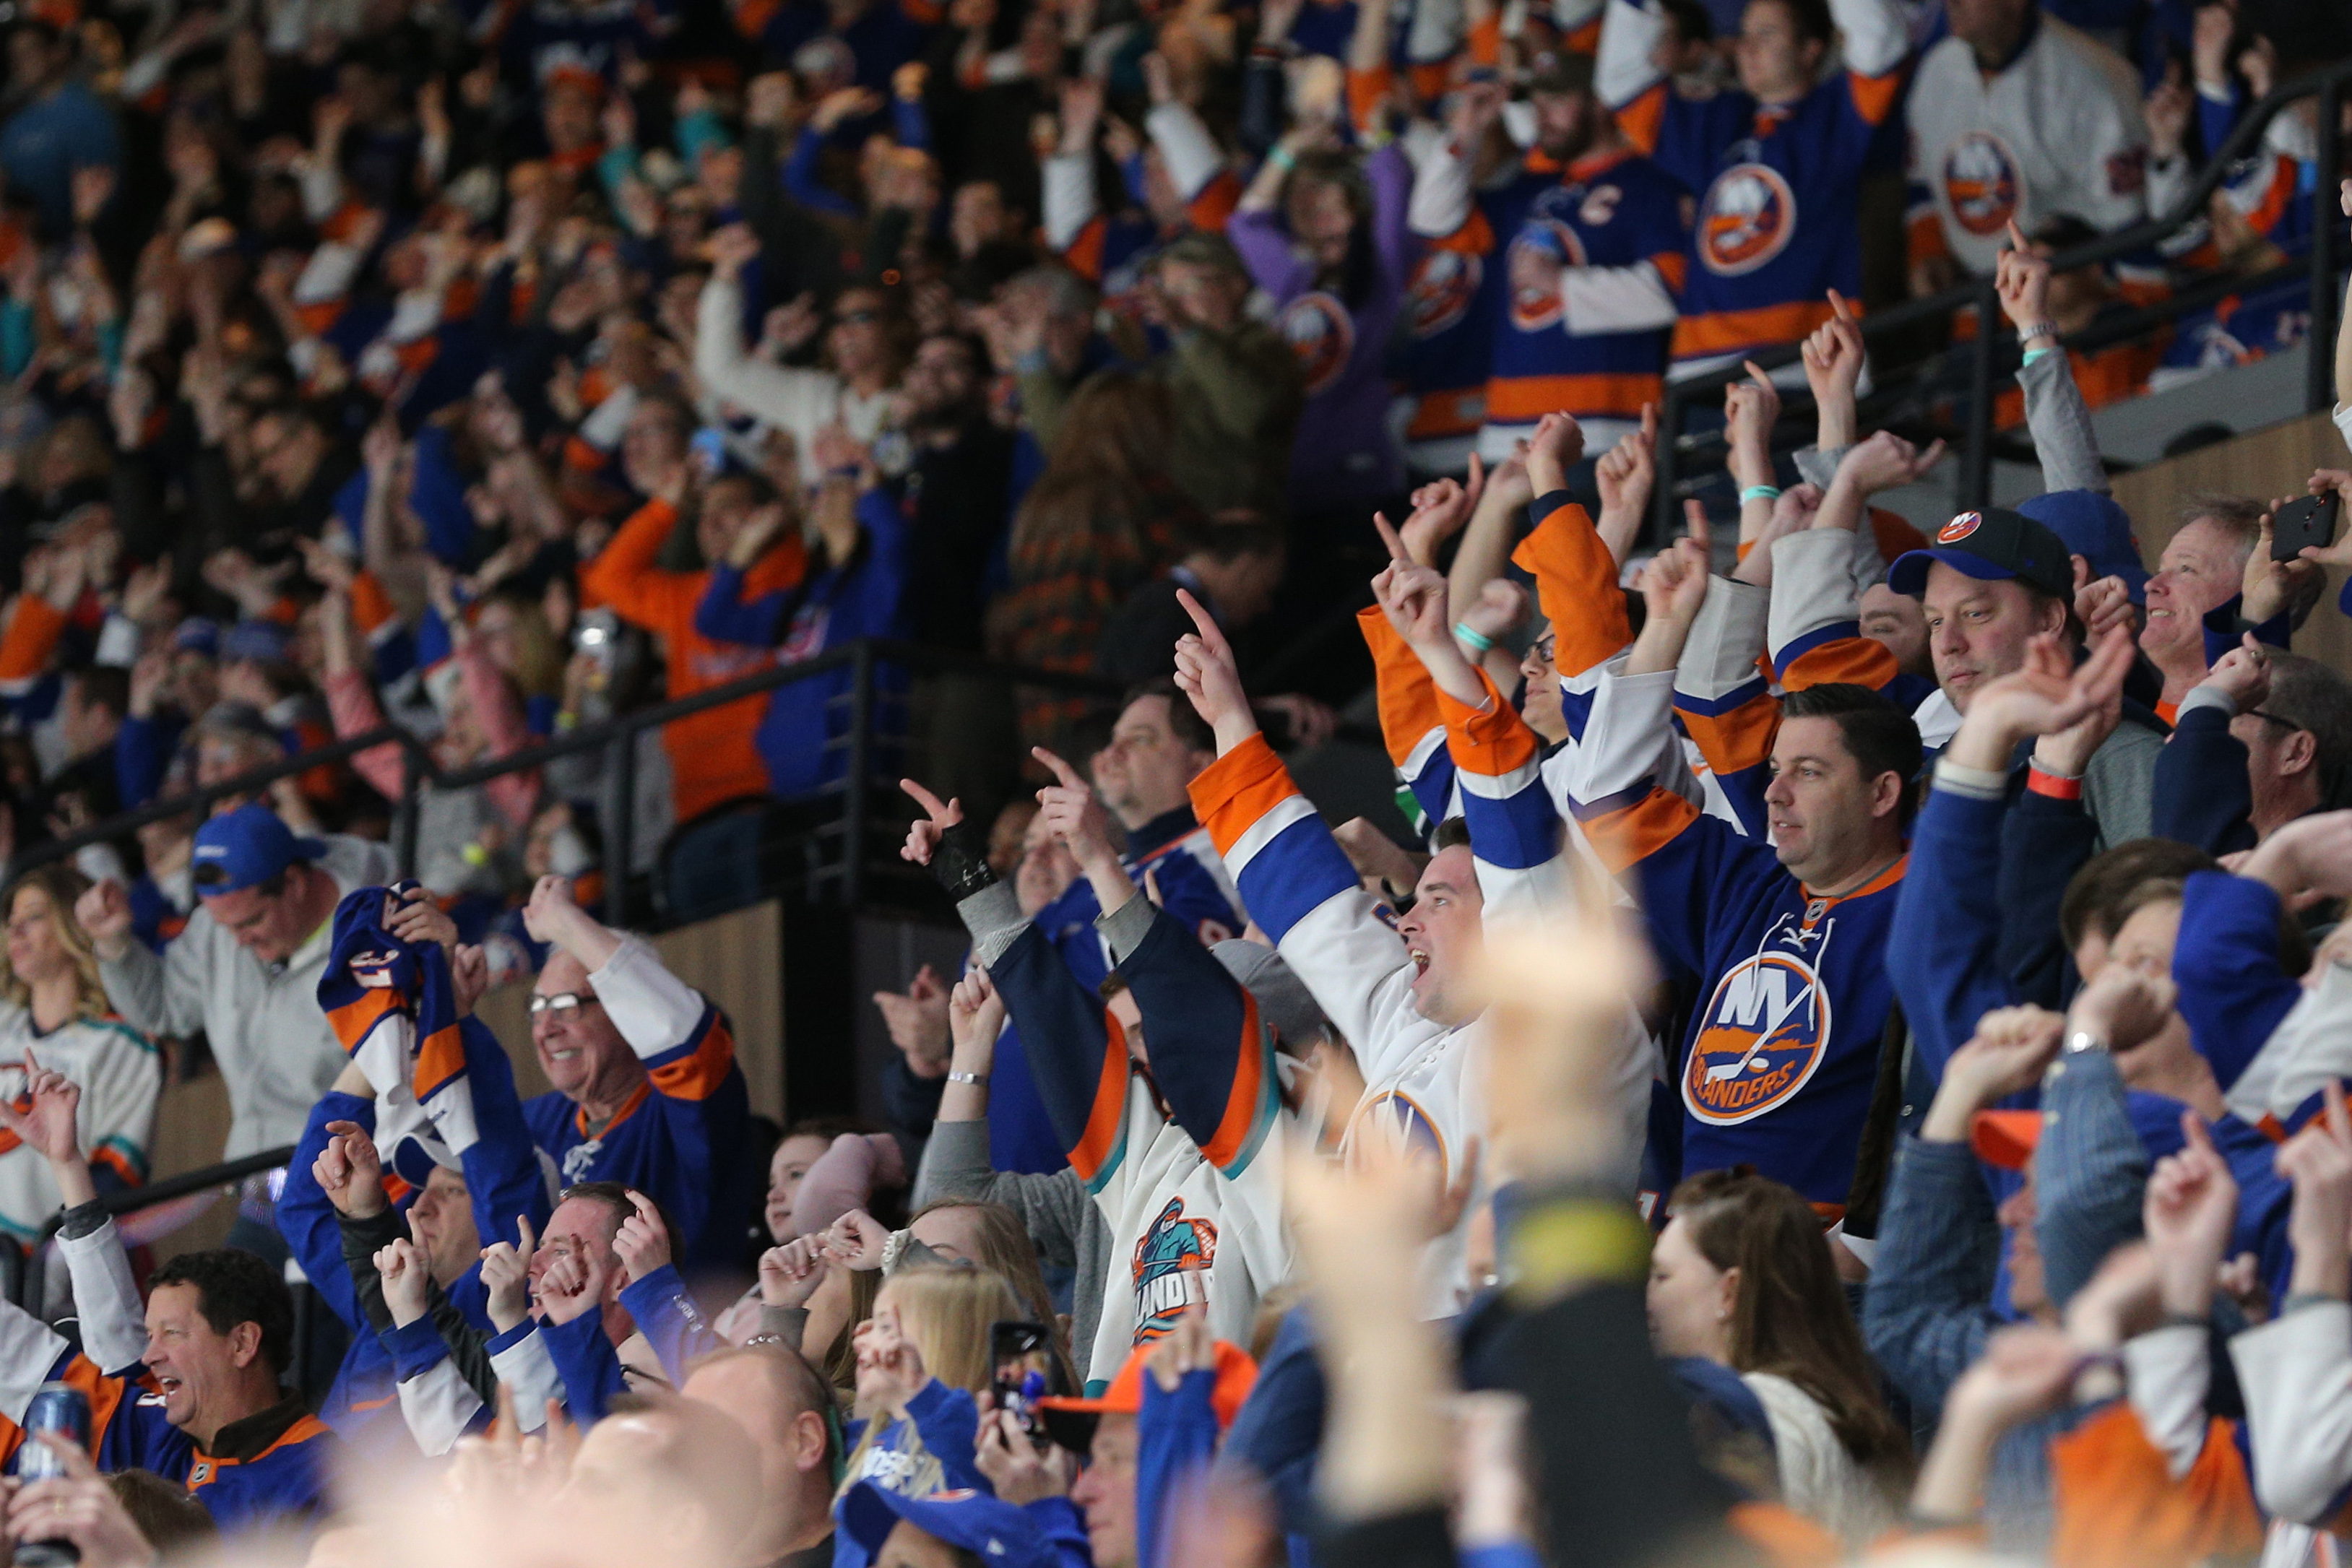 Mar 24, 2019; Uniondale, NY, USA; New York Islanders fans celebrate after an Islanders goal against the Arizona Coyotes during the third period at Nassau Veterans Memorial Coliseum. Mandatory Credit: Brad Penner-USA TODAY Sports